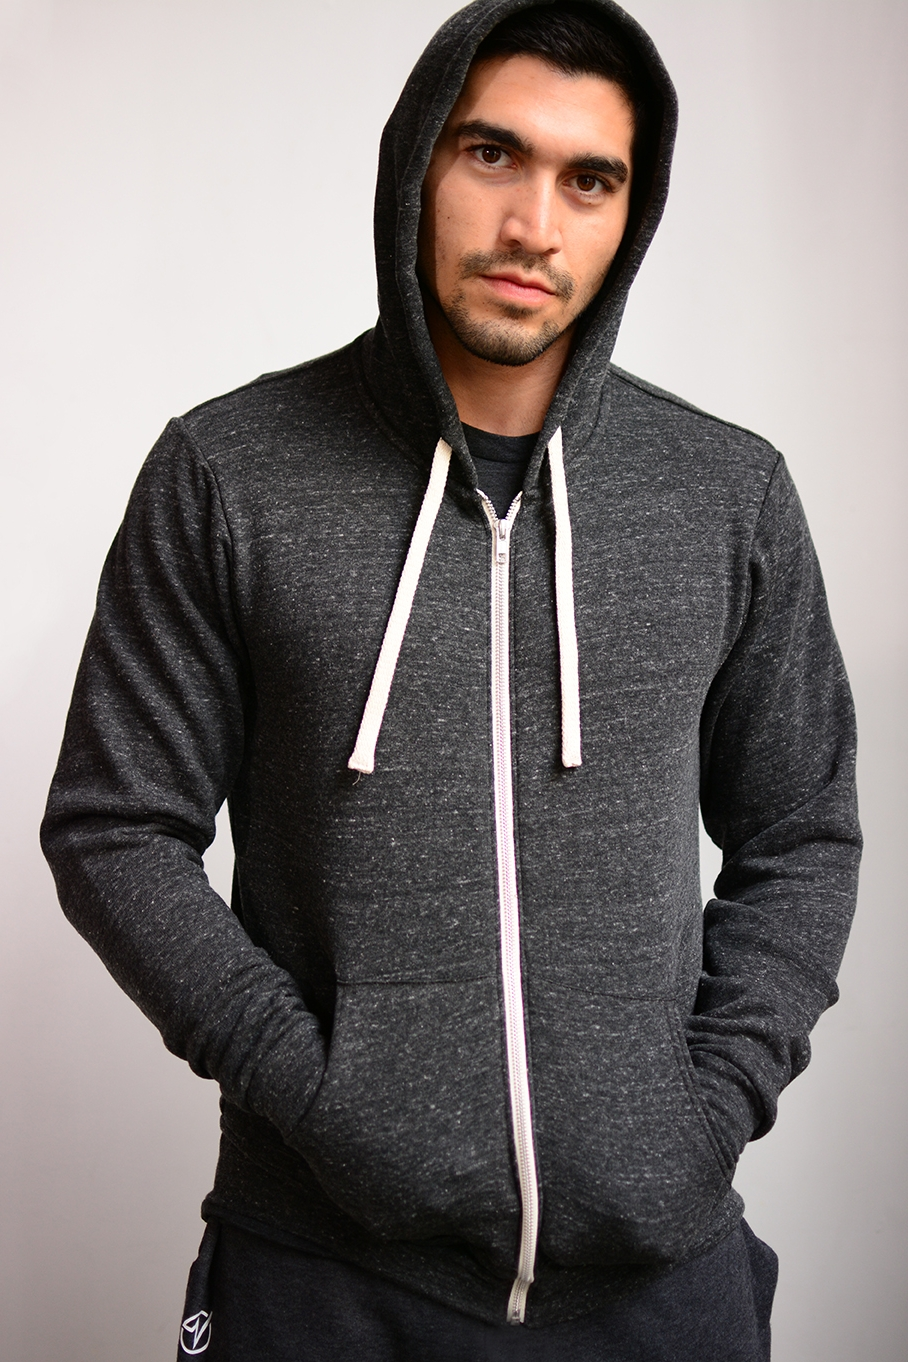 Unisex Printed Zip Up Hoodie - SKU: U3909MIN QTY 15 / Any Color - Any Size$33.00-$38.50COLORS: CharcoalSizes: XS, S, M, L, XL, 2XL